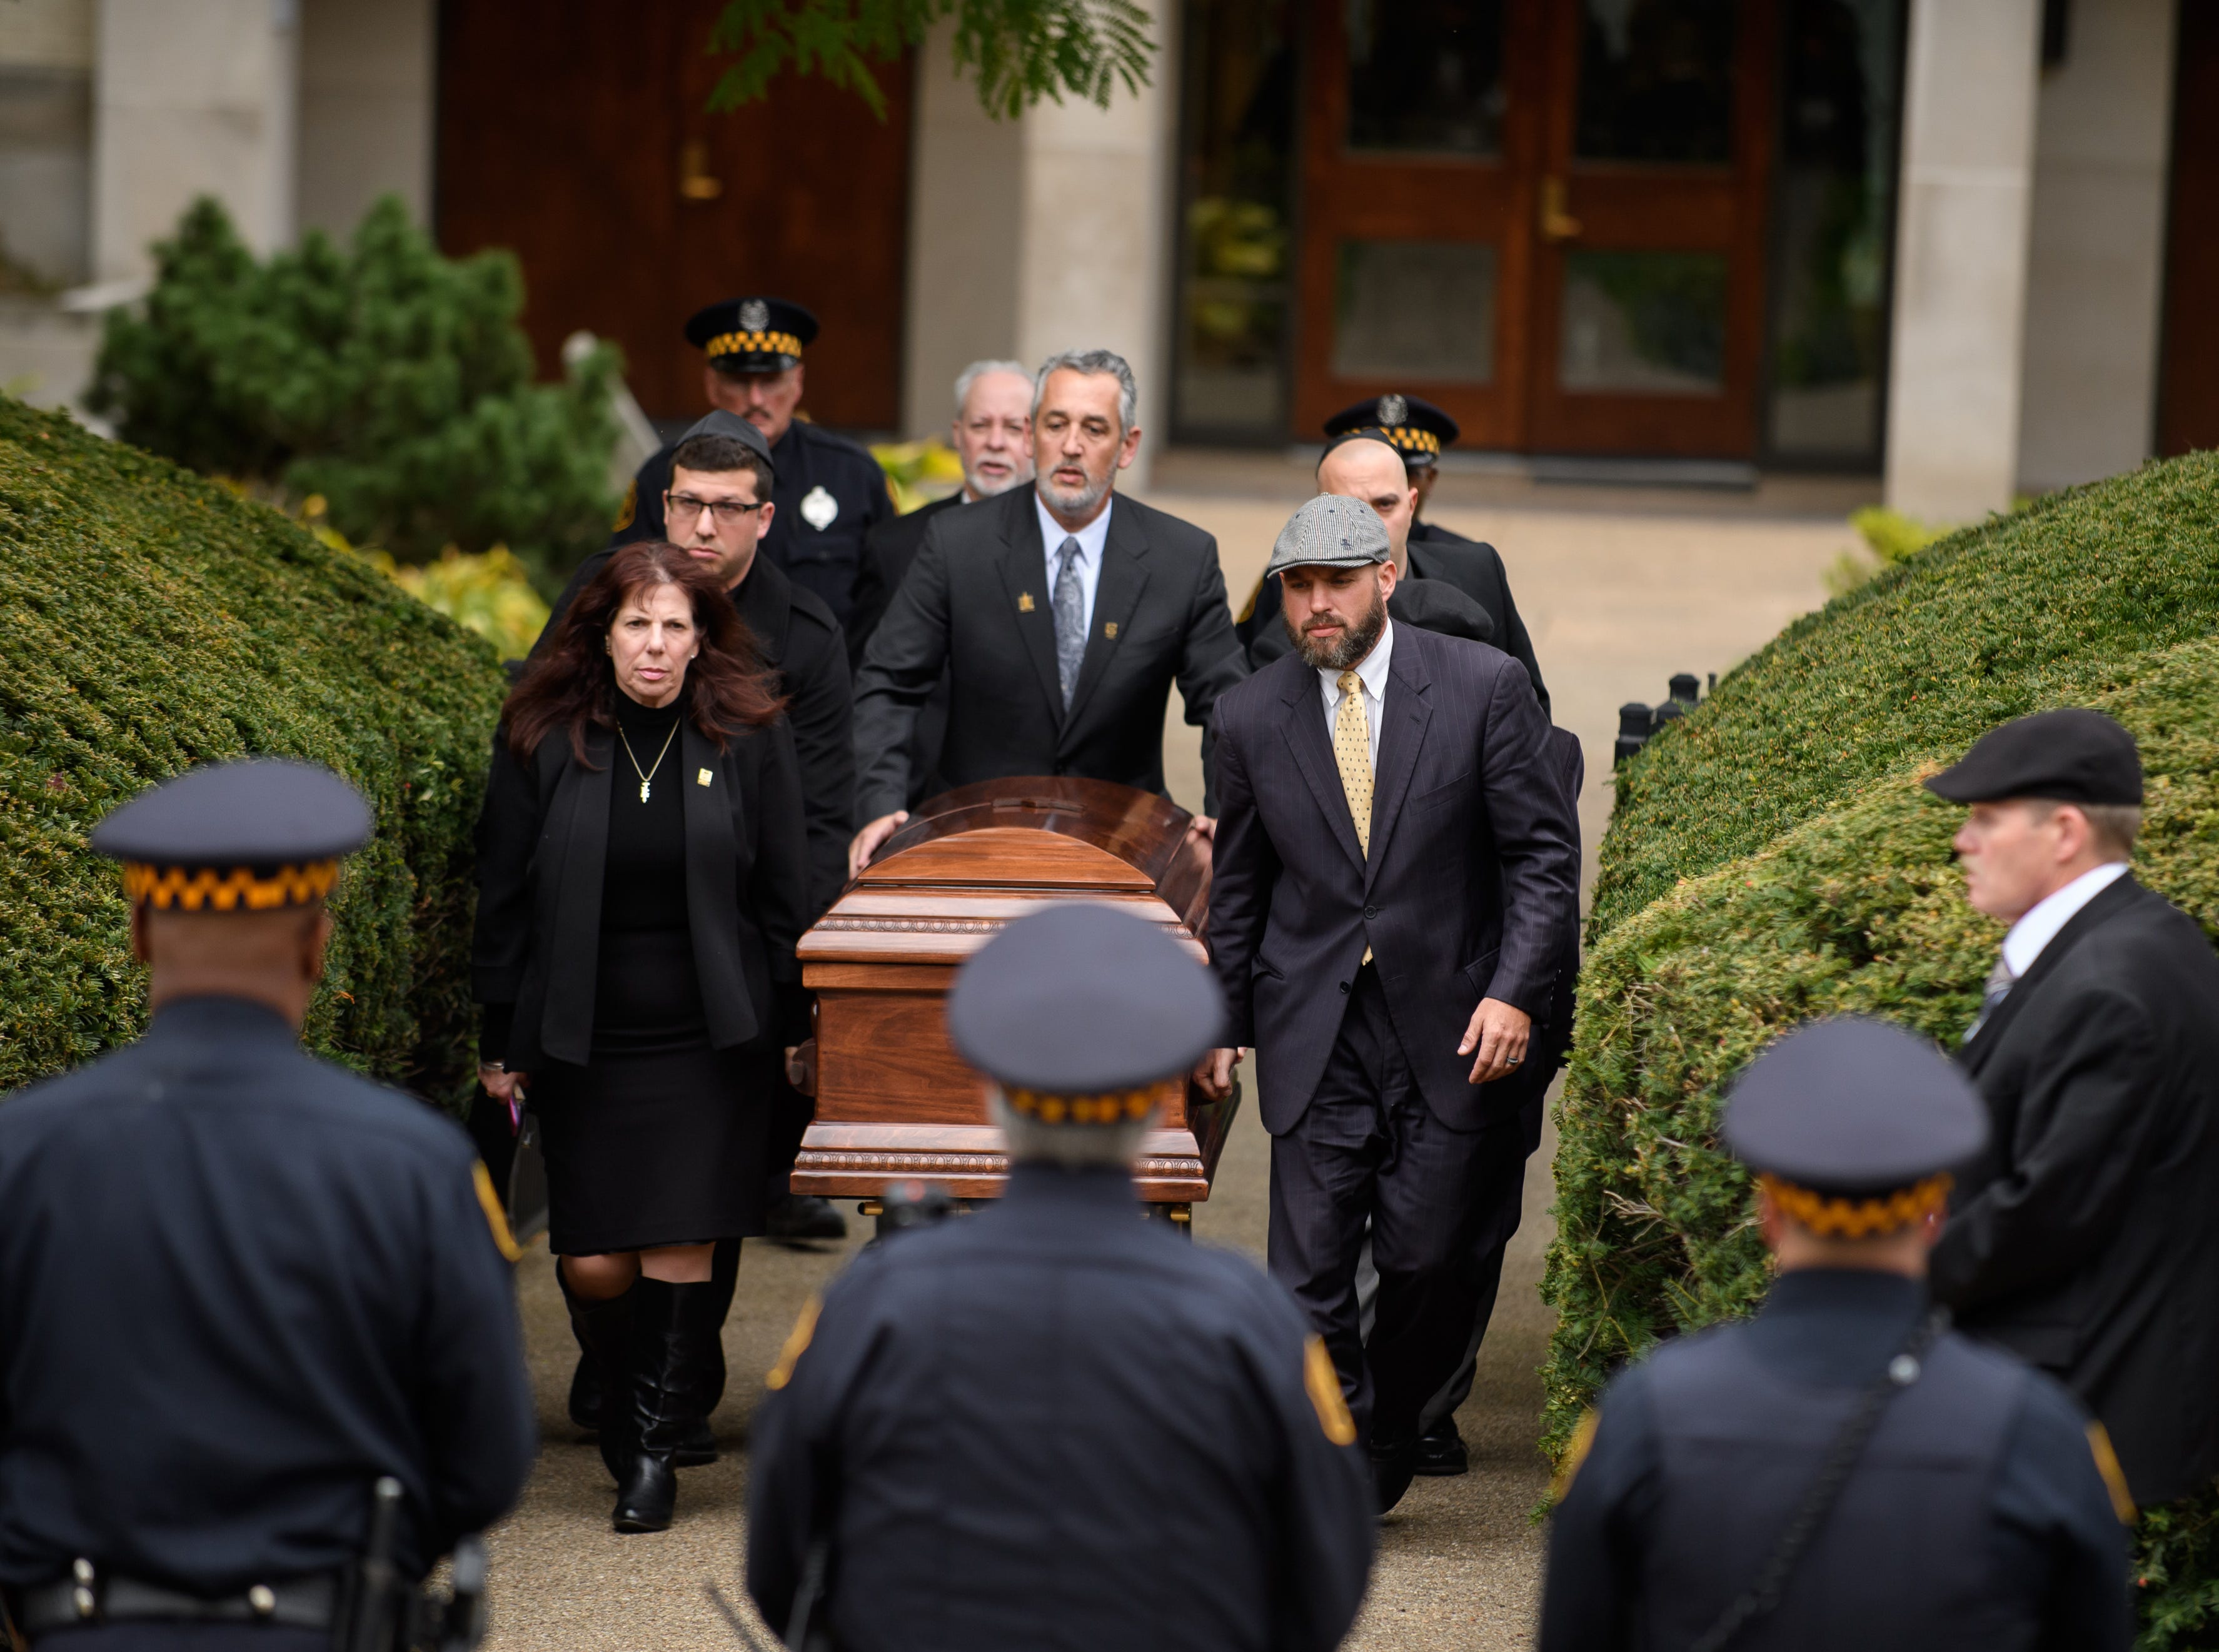 The casket of Irving Younger is led to a hearse outside Rodef Shalom Temple following his funeral on Oct. 31, 2018 in Pittsburgh, Pa. Irving Younger was one of 11 people killed in the mass shooting at the Tree of Life Synagogue on October 27.